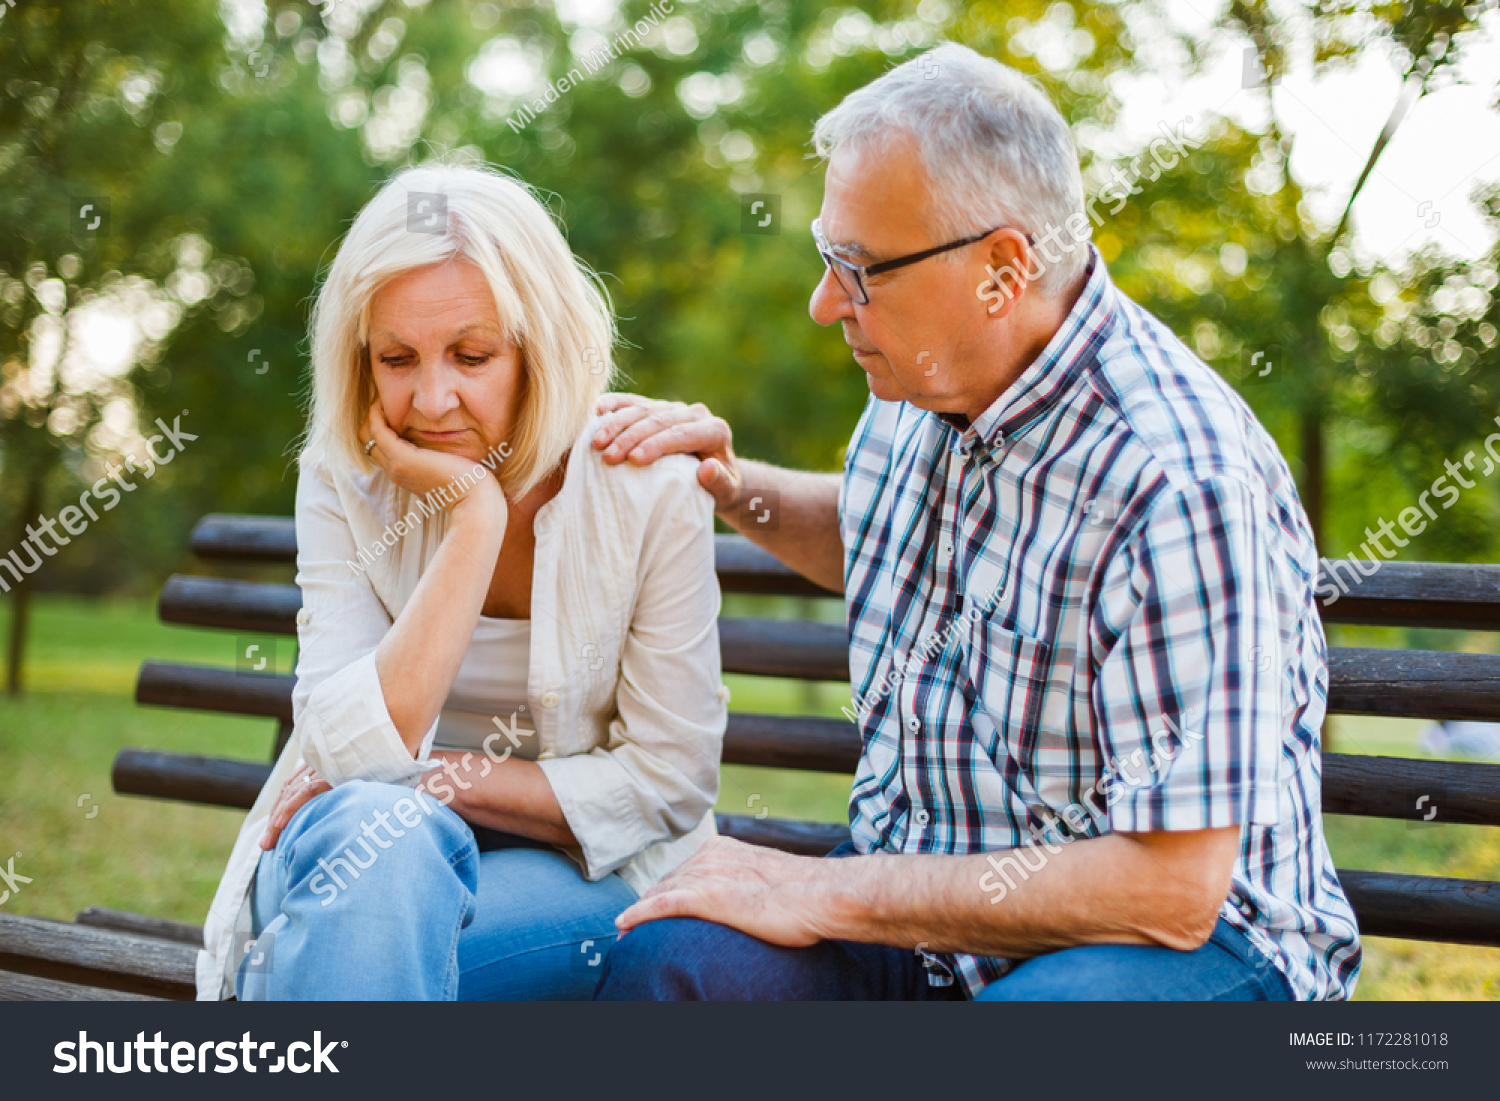 Senior woman is sad and depressed. Friend is consoling her.